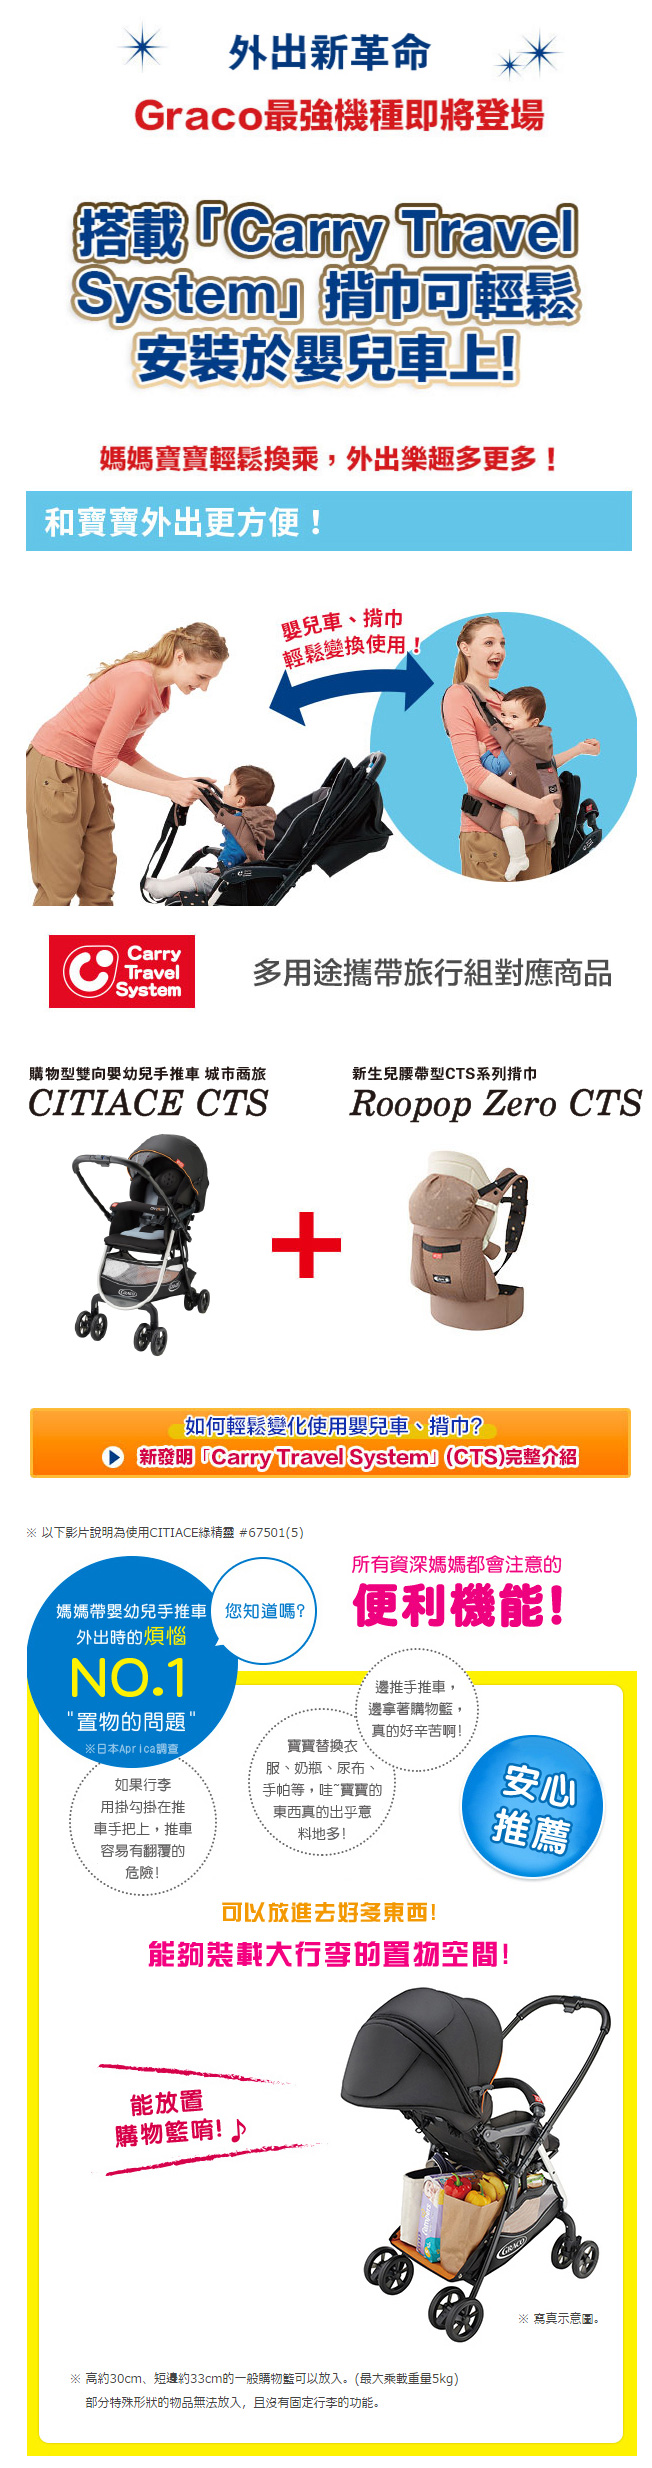 graco-citiace-cts-info01